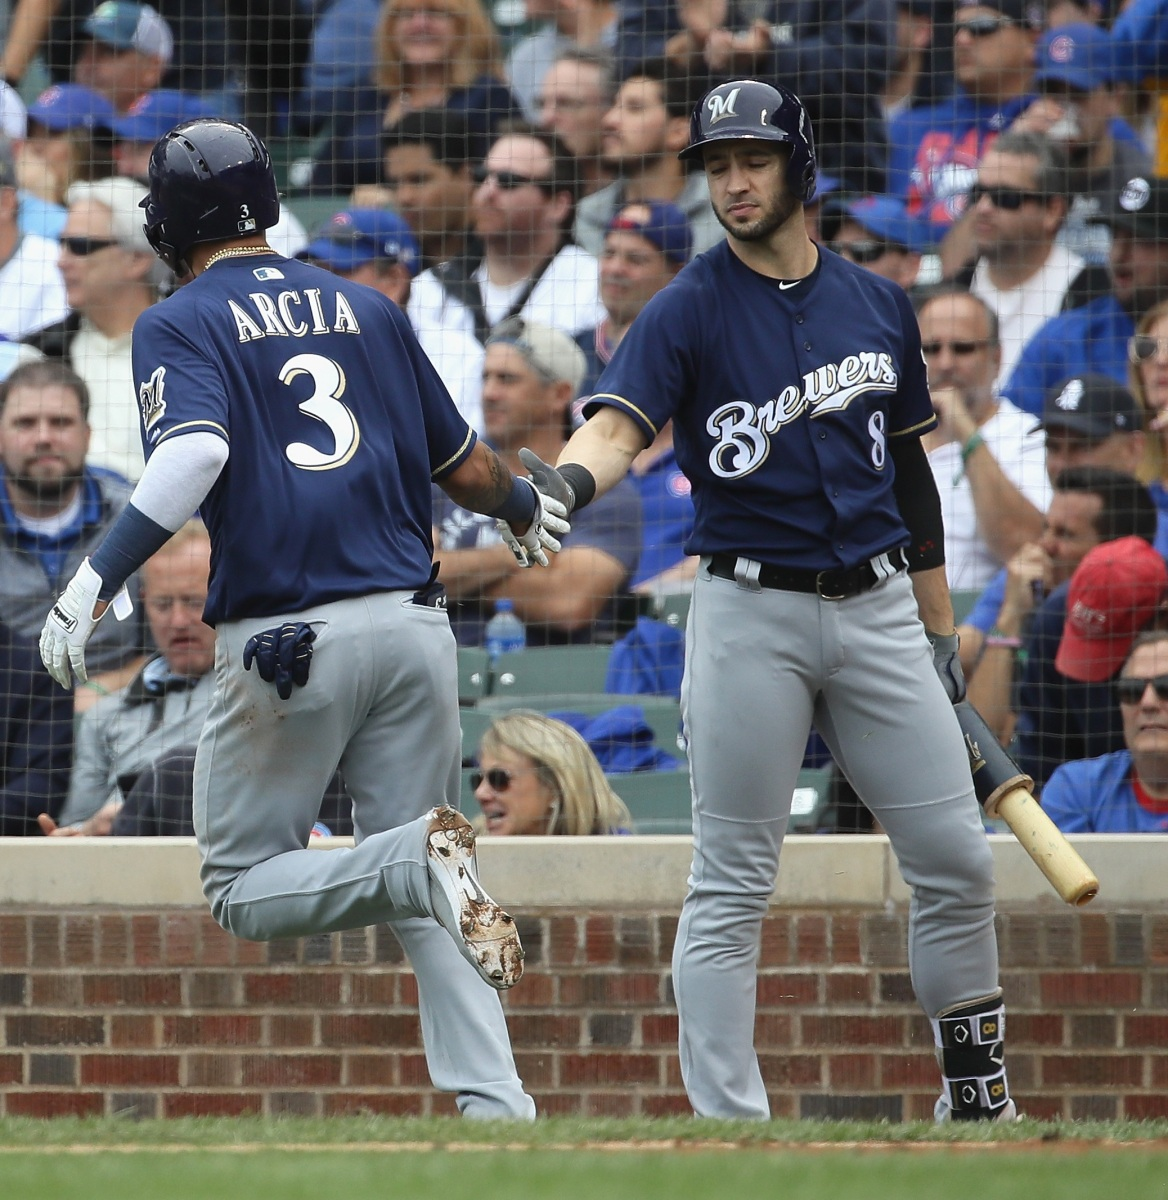 Orlando Arcia #3 of the Milwaukee Brewers is congratulated by Ryan Braun #8 after scoring a run in the 3rd inning against the Chicago Cubs during the National League Tiebreaker Game at Wrigley Field on October 1, 2018 in Chicago, Illinois. (Photo by Jonathan Daniel/Getty Images)